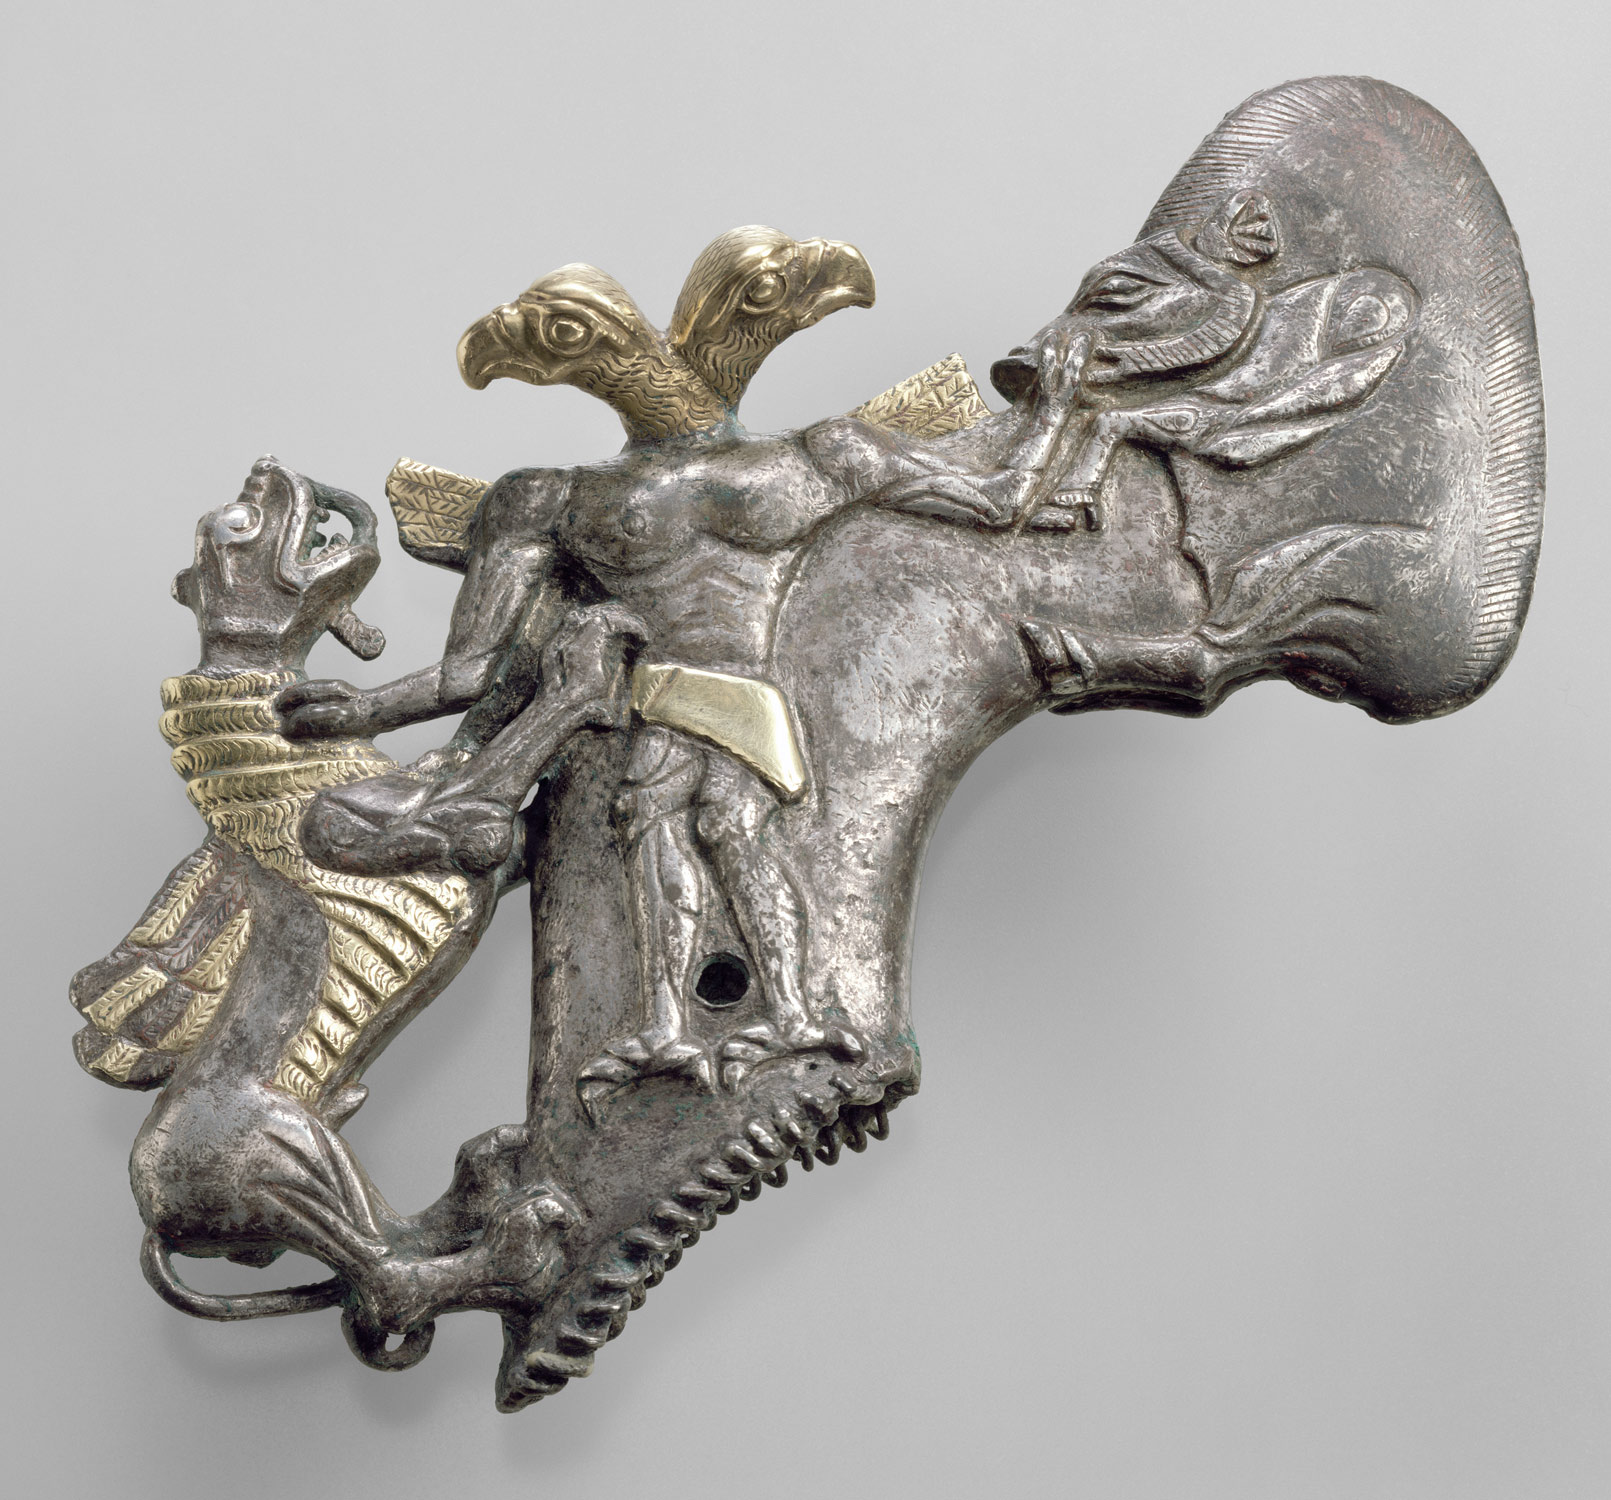 Shaft-hole axhead with a bird-headed demon, boar, and dragon